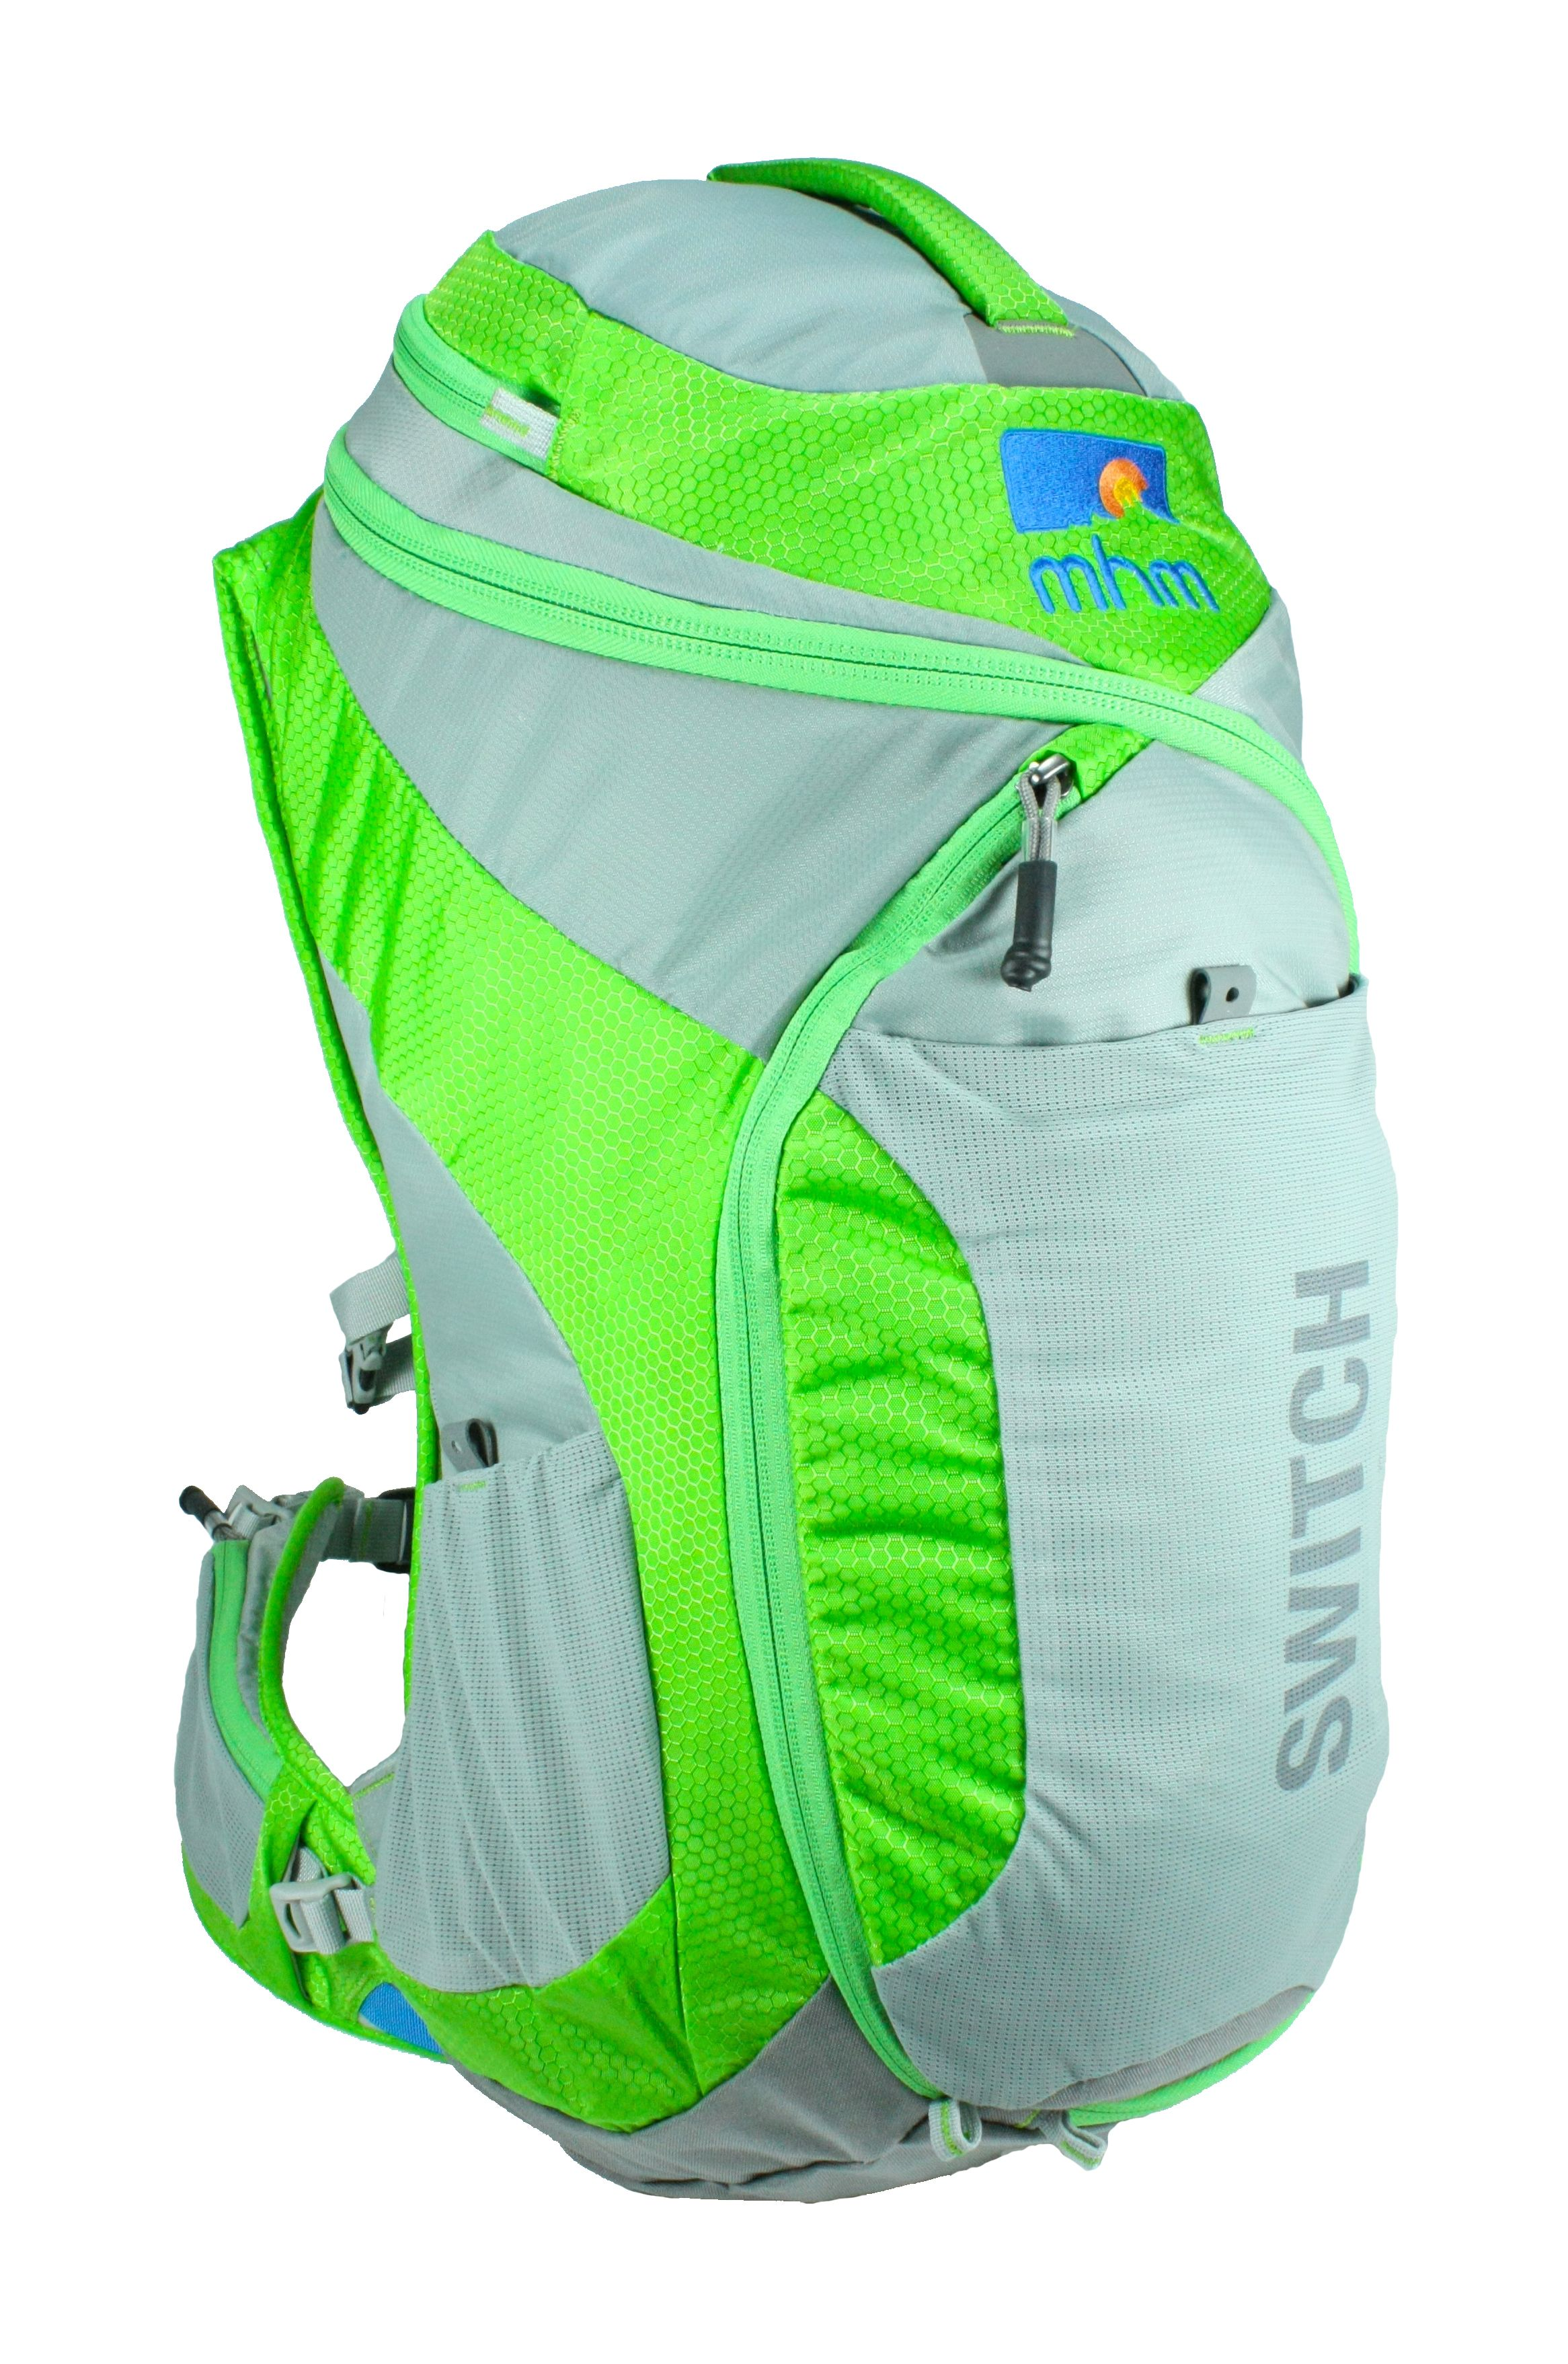 MHM SWITCH 24 Backpack-  The Switch features an S-shaped zipper that goes through every panel of the pack making access to your gear easier. It also allows you to open up the entire pack to use as a ground mat. The pack has 9 pockets, including a large zippered front pocket as well as great carrying features like an HDPE framesheet, angle adjustable and removable hipbelt and perforated foam. Available Spring 2014